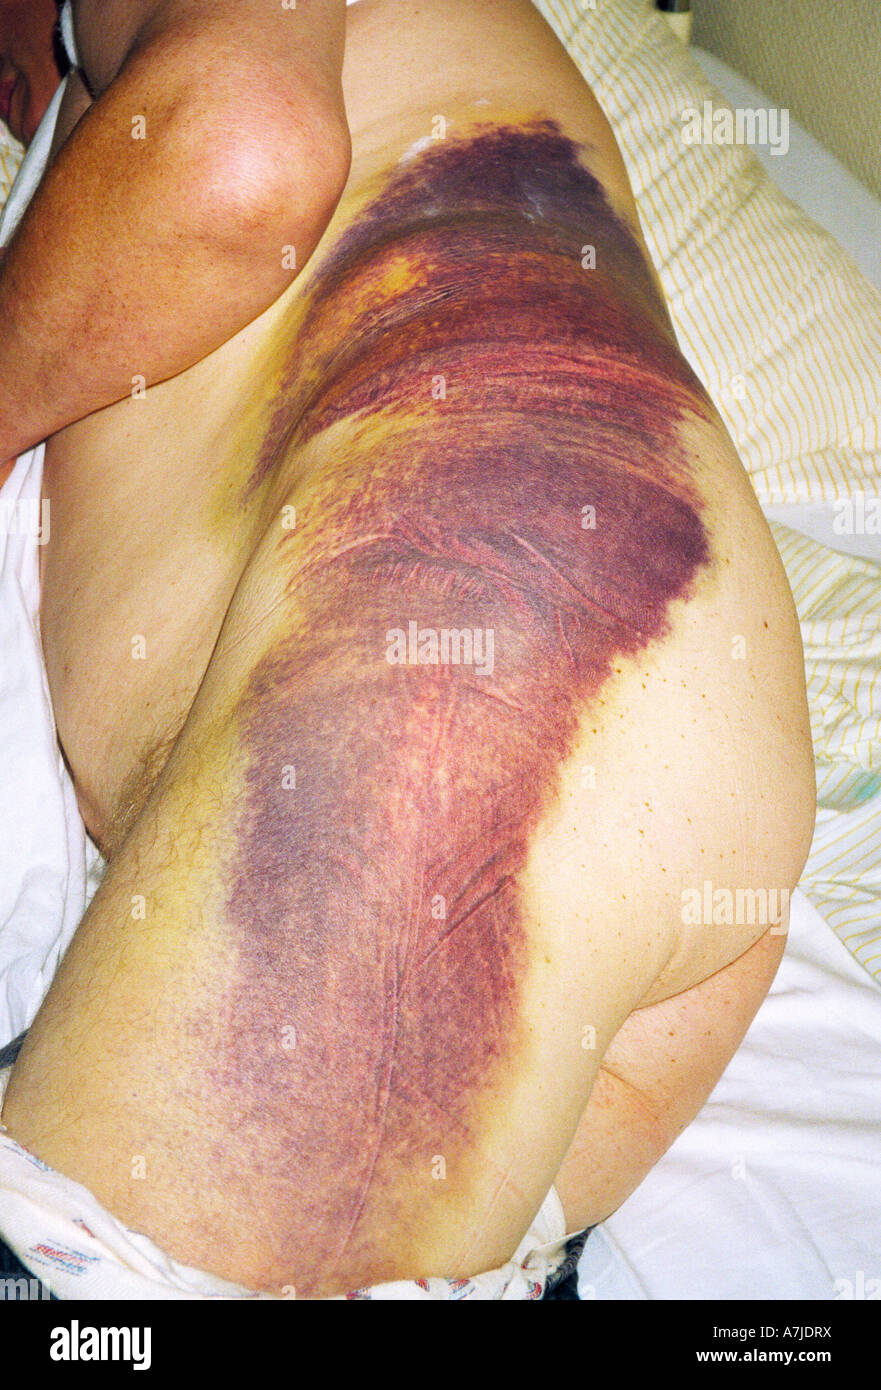 elderly man in a hospital after a motorbike accident, enormous hematoma in the lumbar region and on the thigh - Stock Image